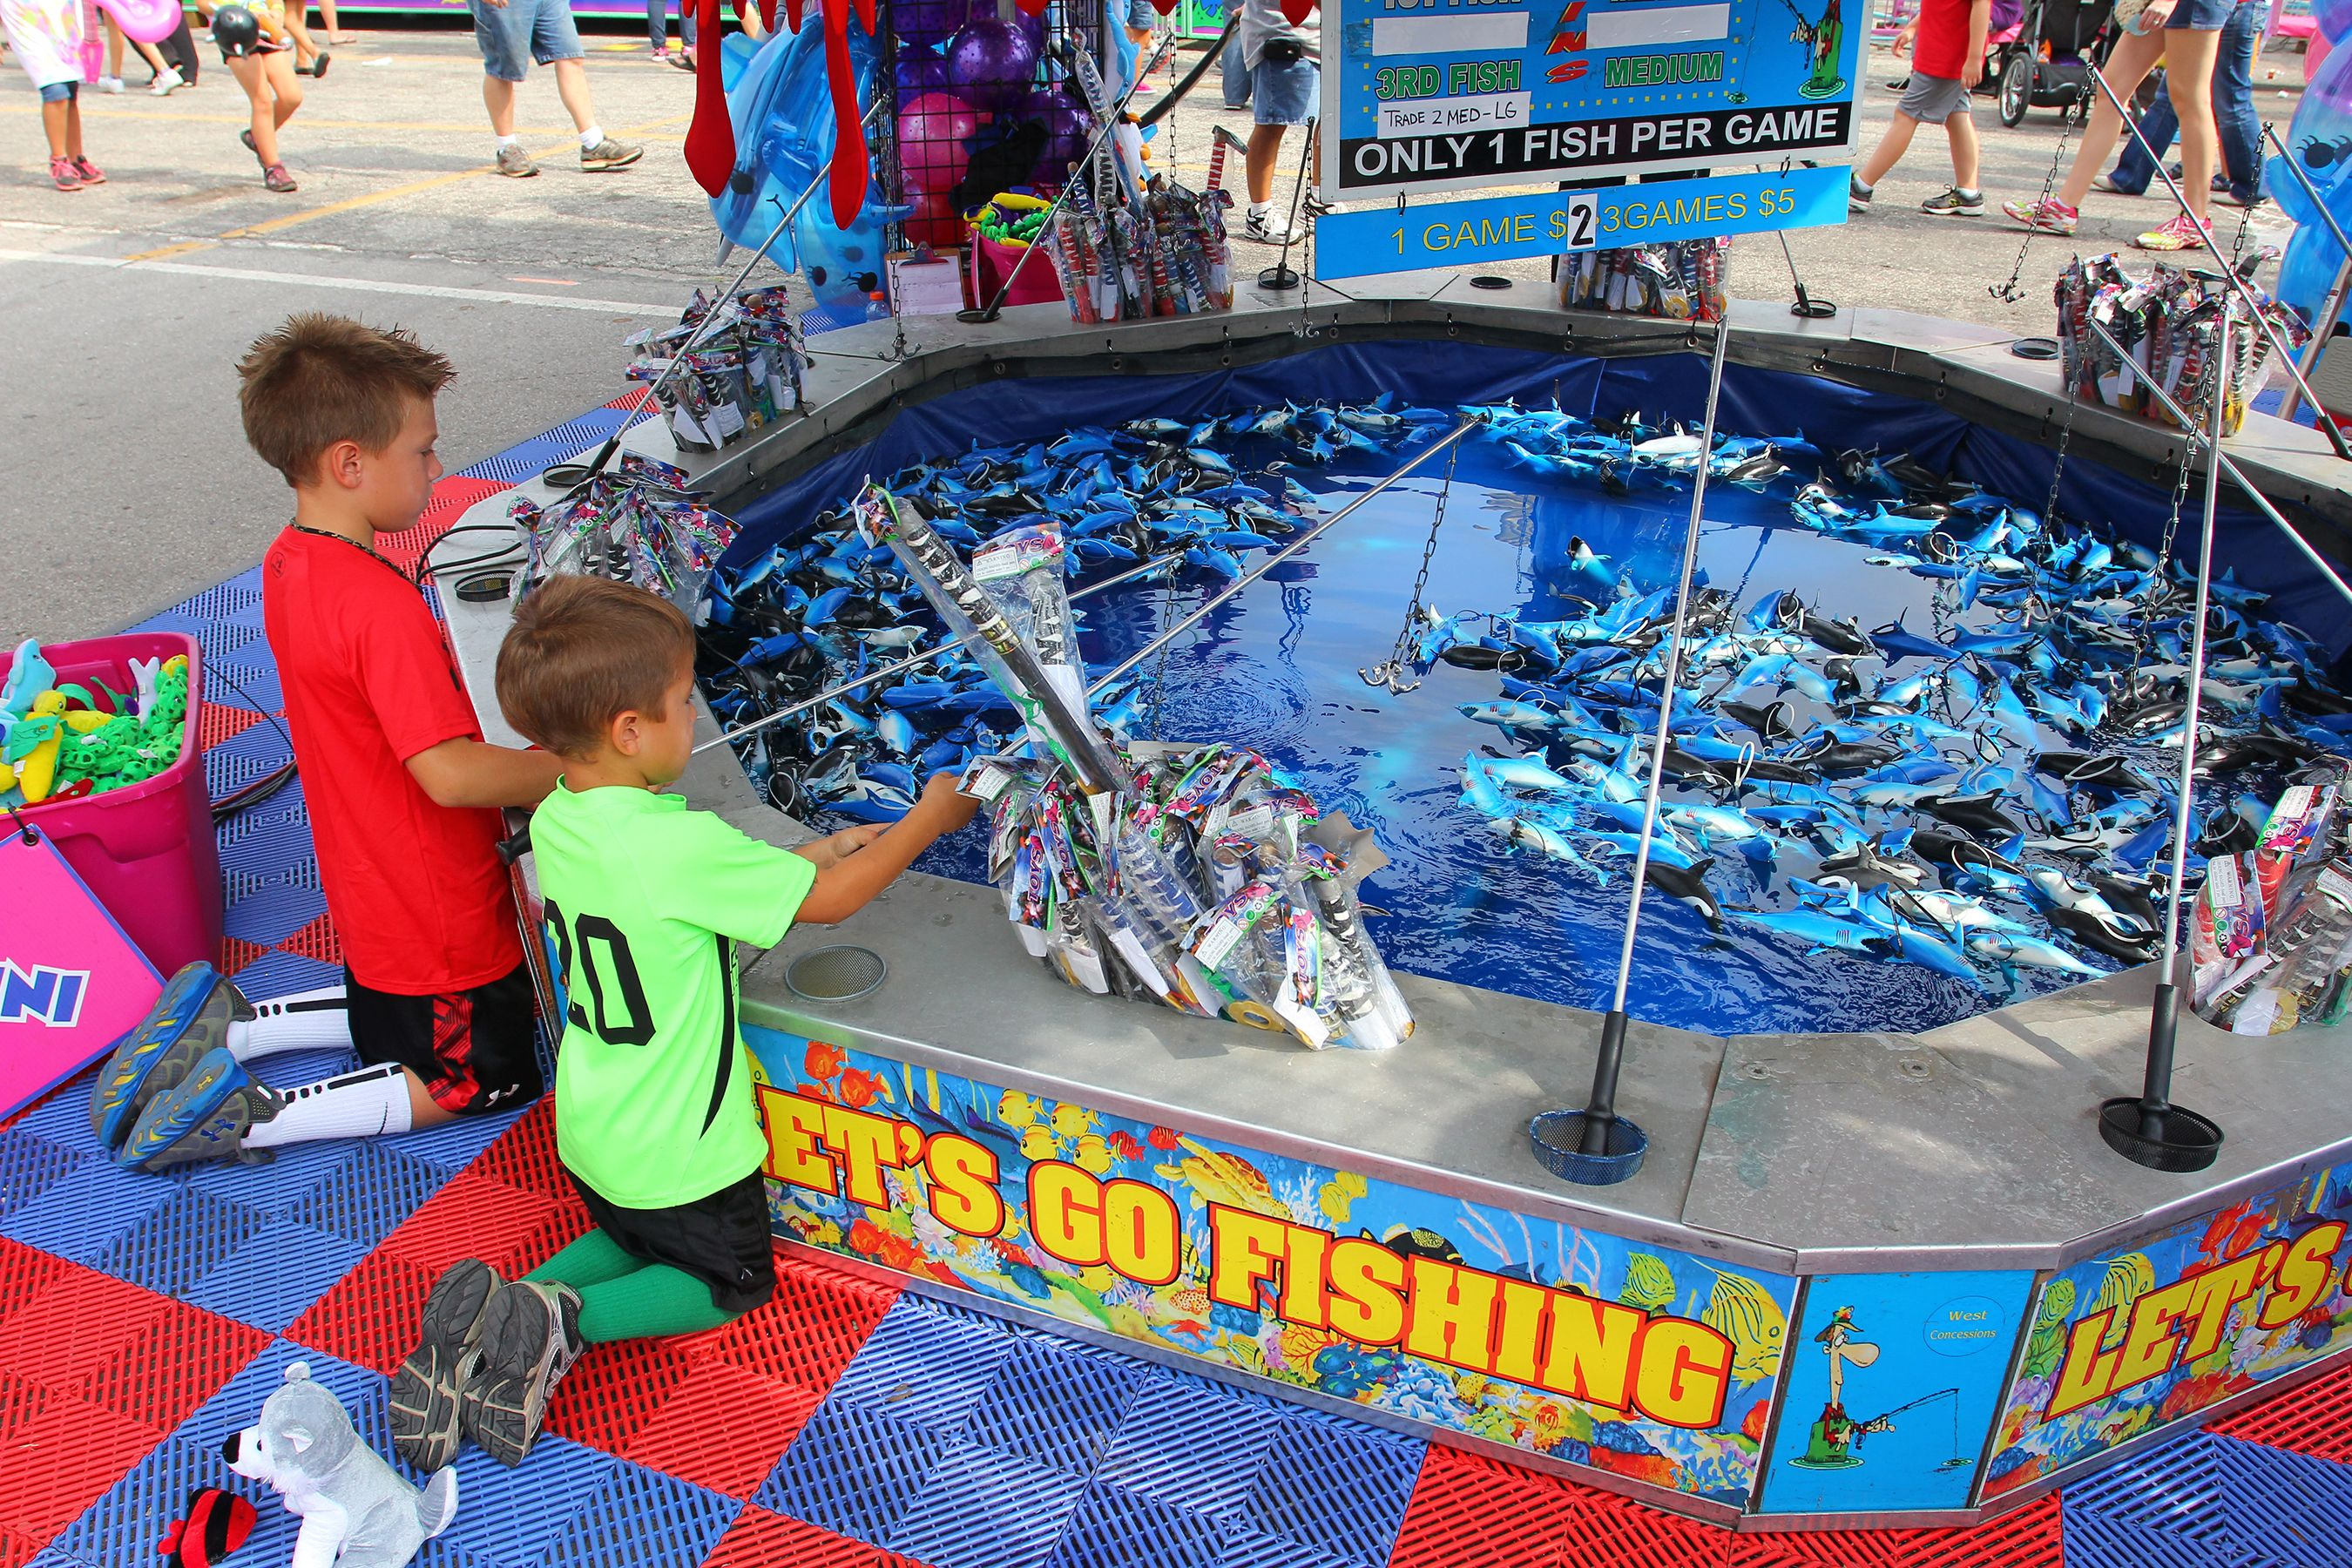 Lets go fishing fairs carnivals food fun pinterest for Fish catching games